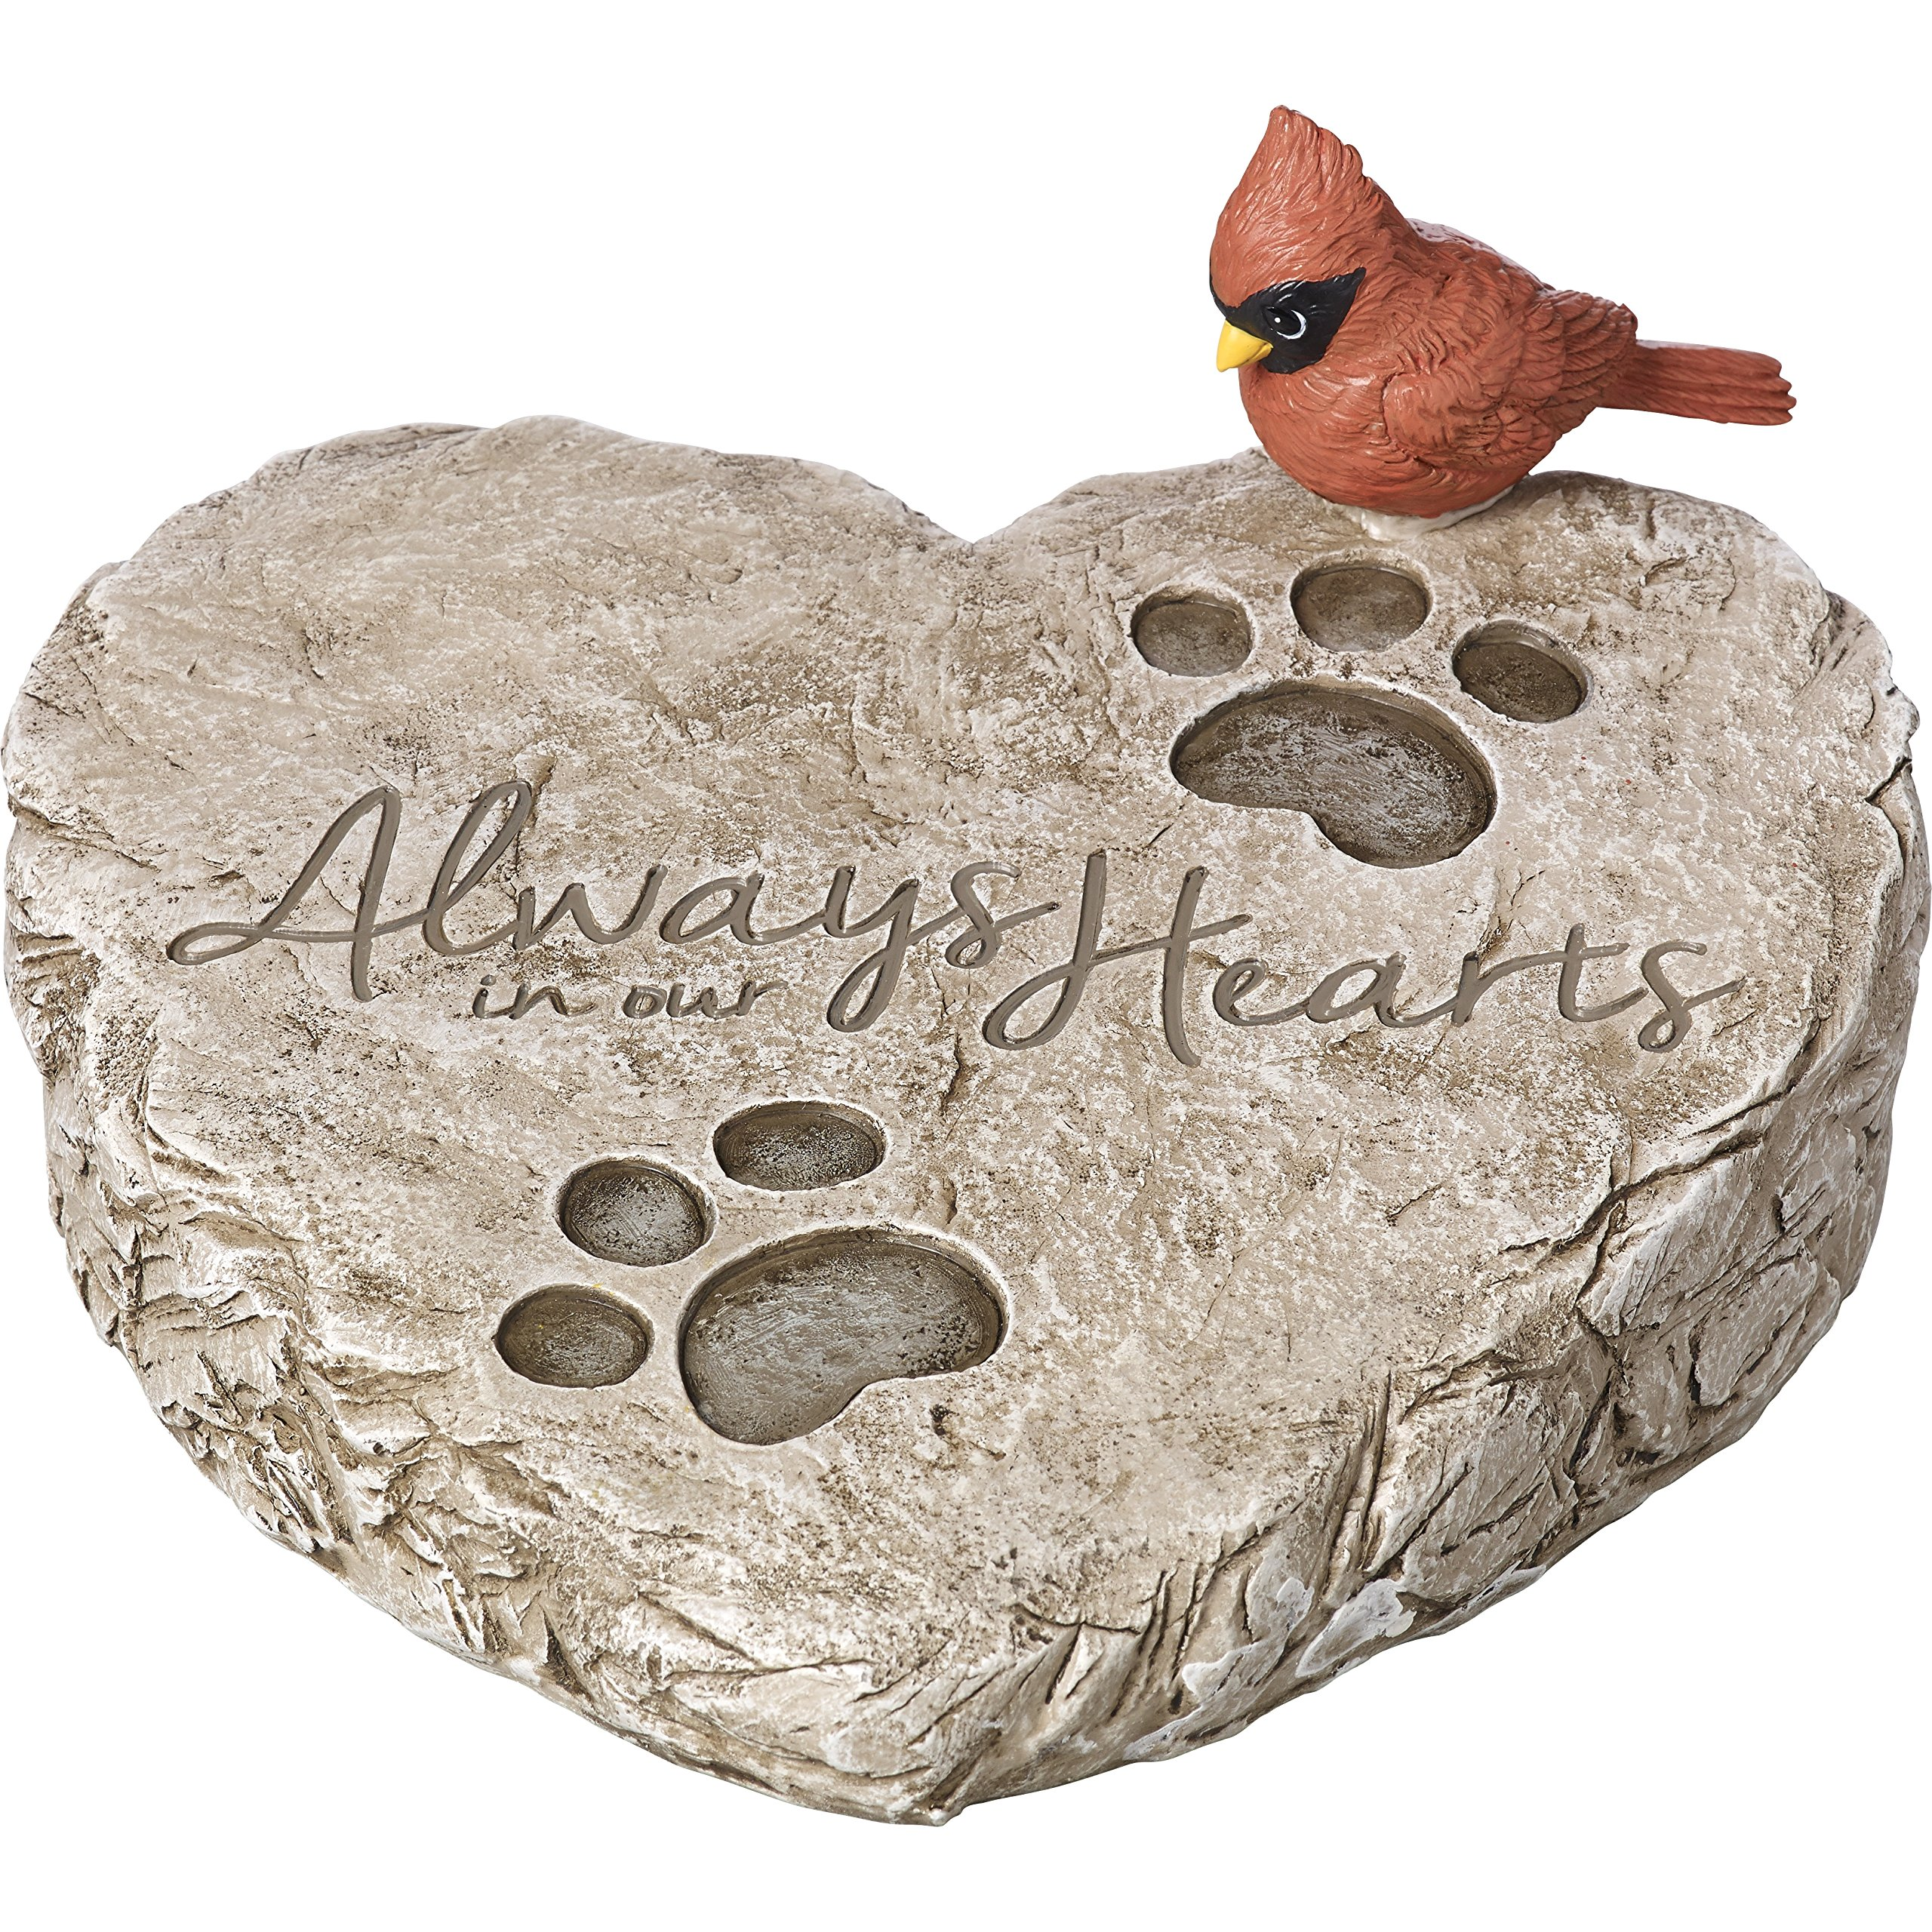 Precious Moments Garden Gifts by 171460 Always In Our Hearts Decorative Resin Memorial Garden Stone with Cardinal Accent Yard Decor, Gray/Red, 8-inch Long by 7-in Wide